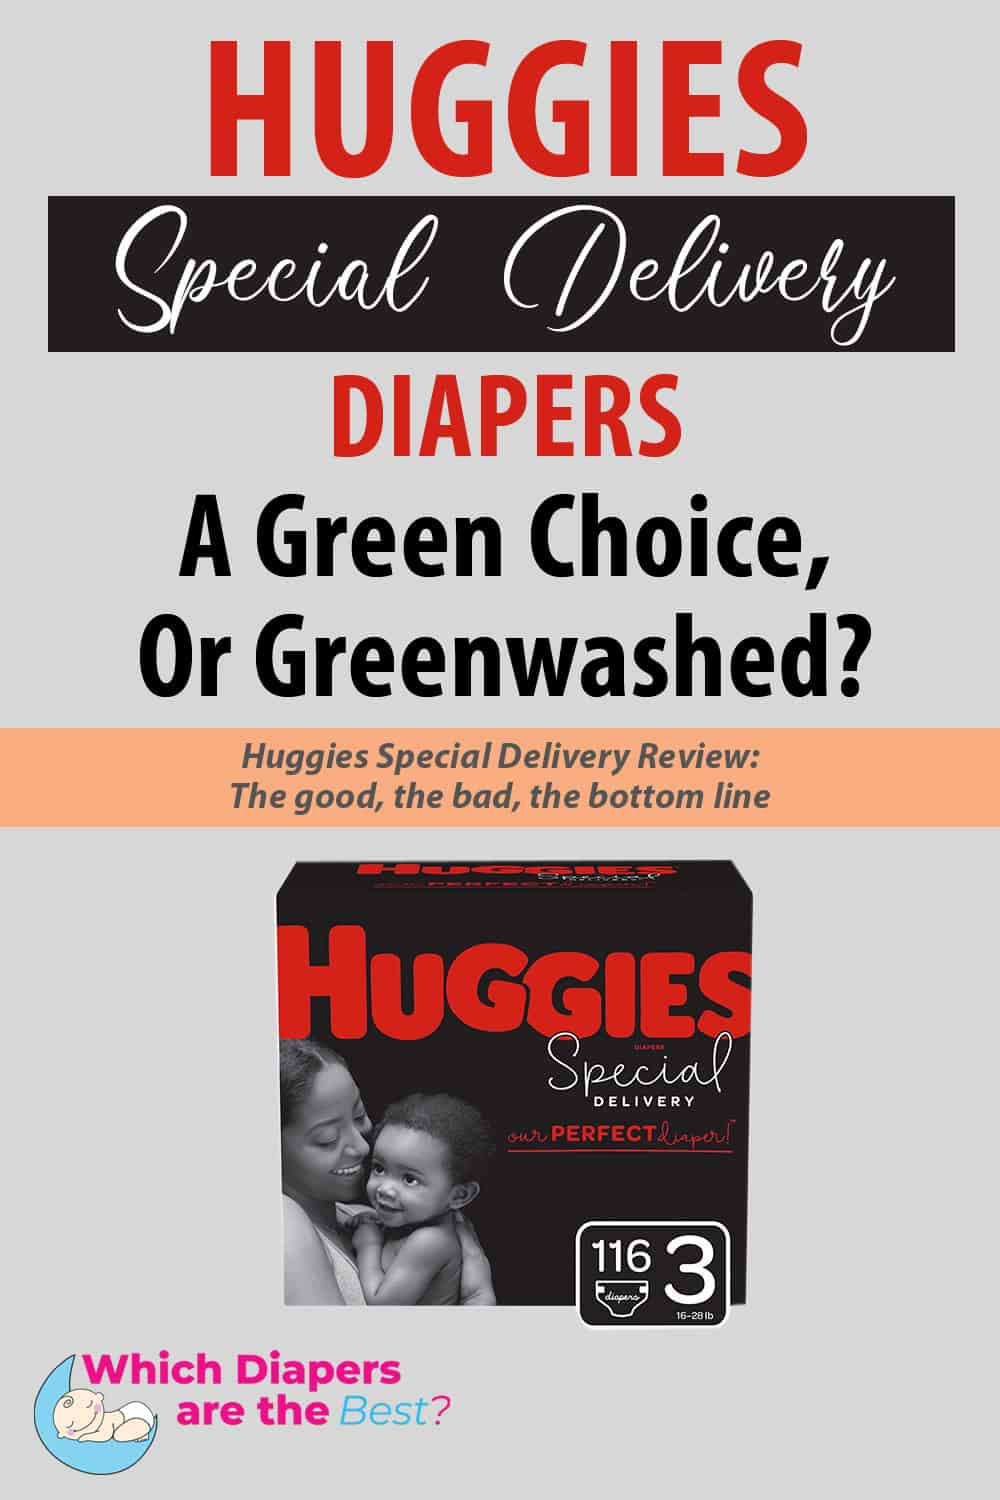 Huggies special Delivery Pin